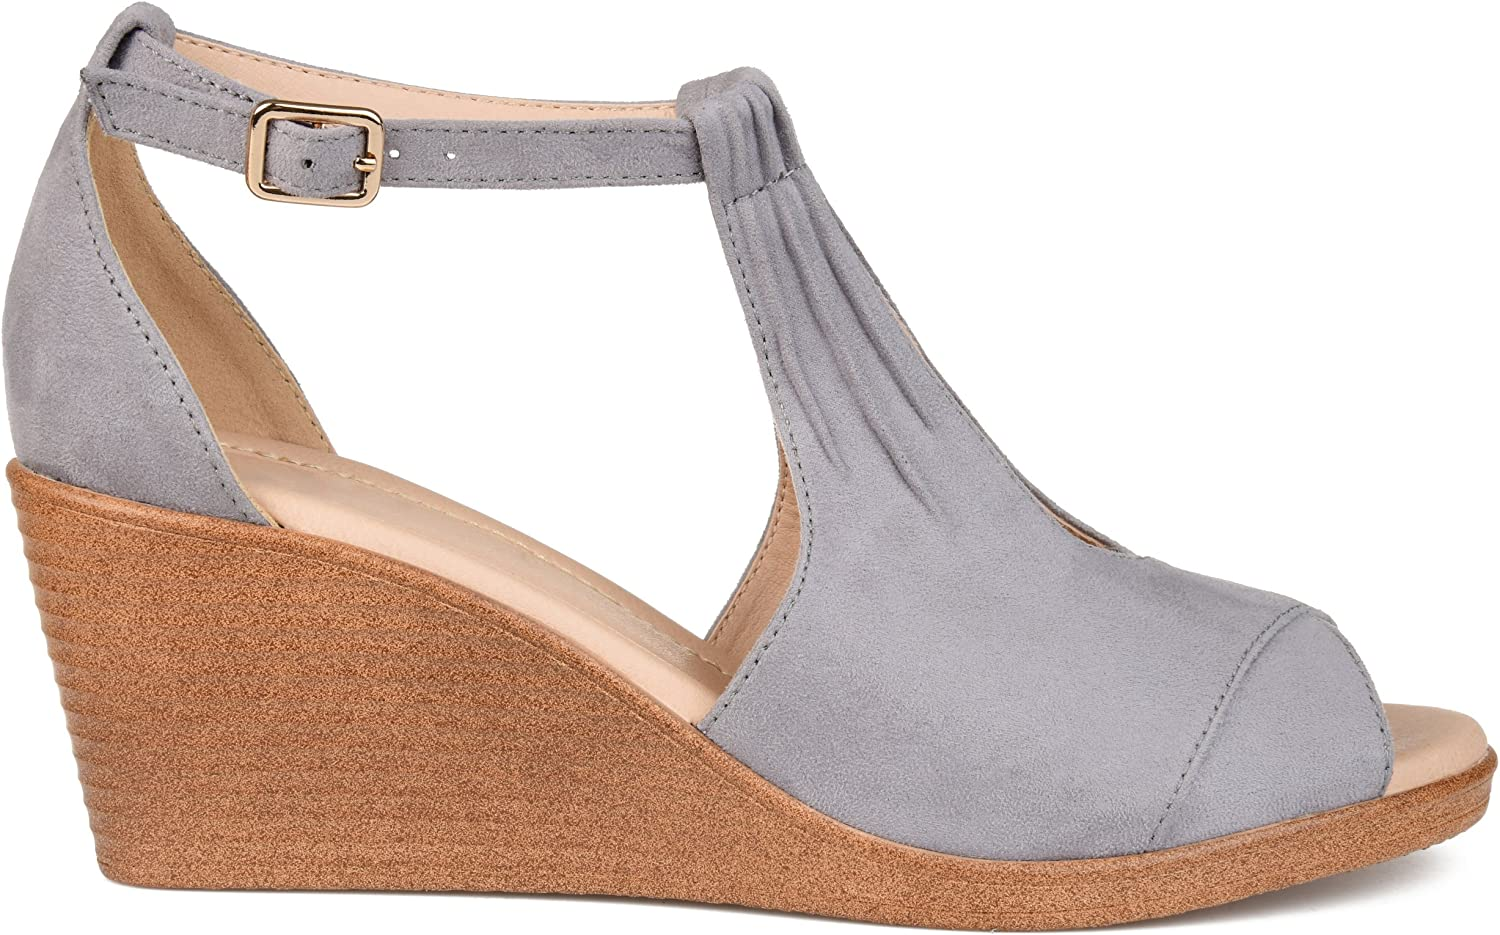 Brinley Co Womens Kealy Comfort-Sole Ankle-Strap Center-Cut Wedges